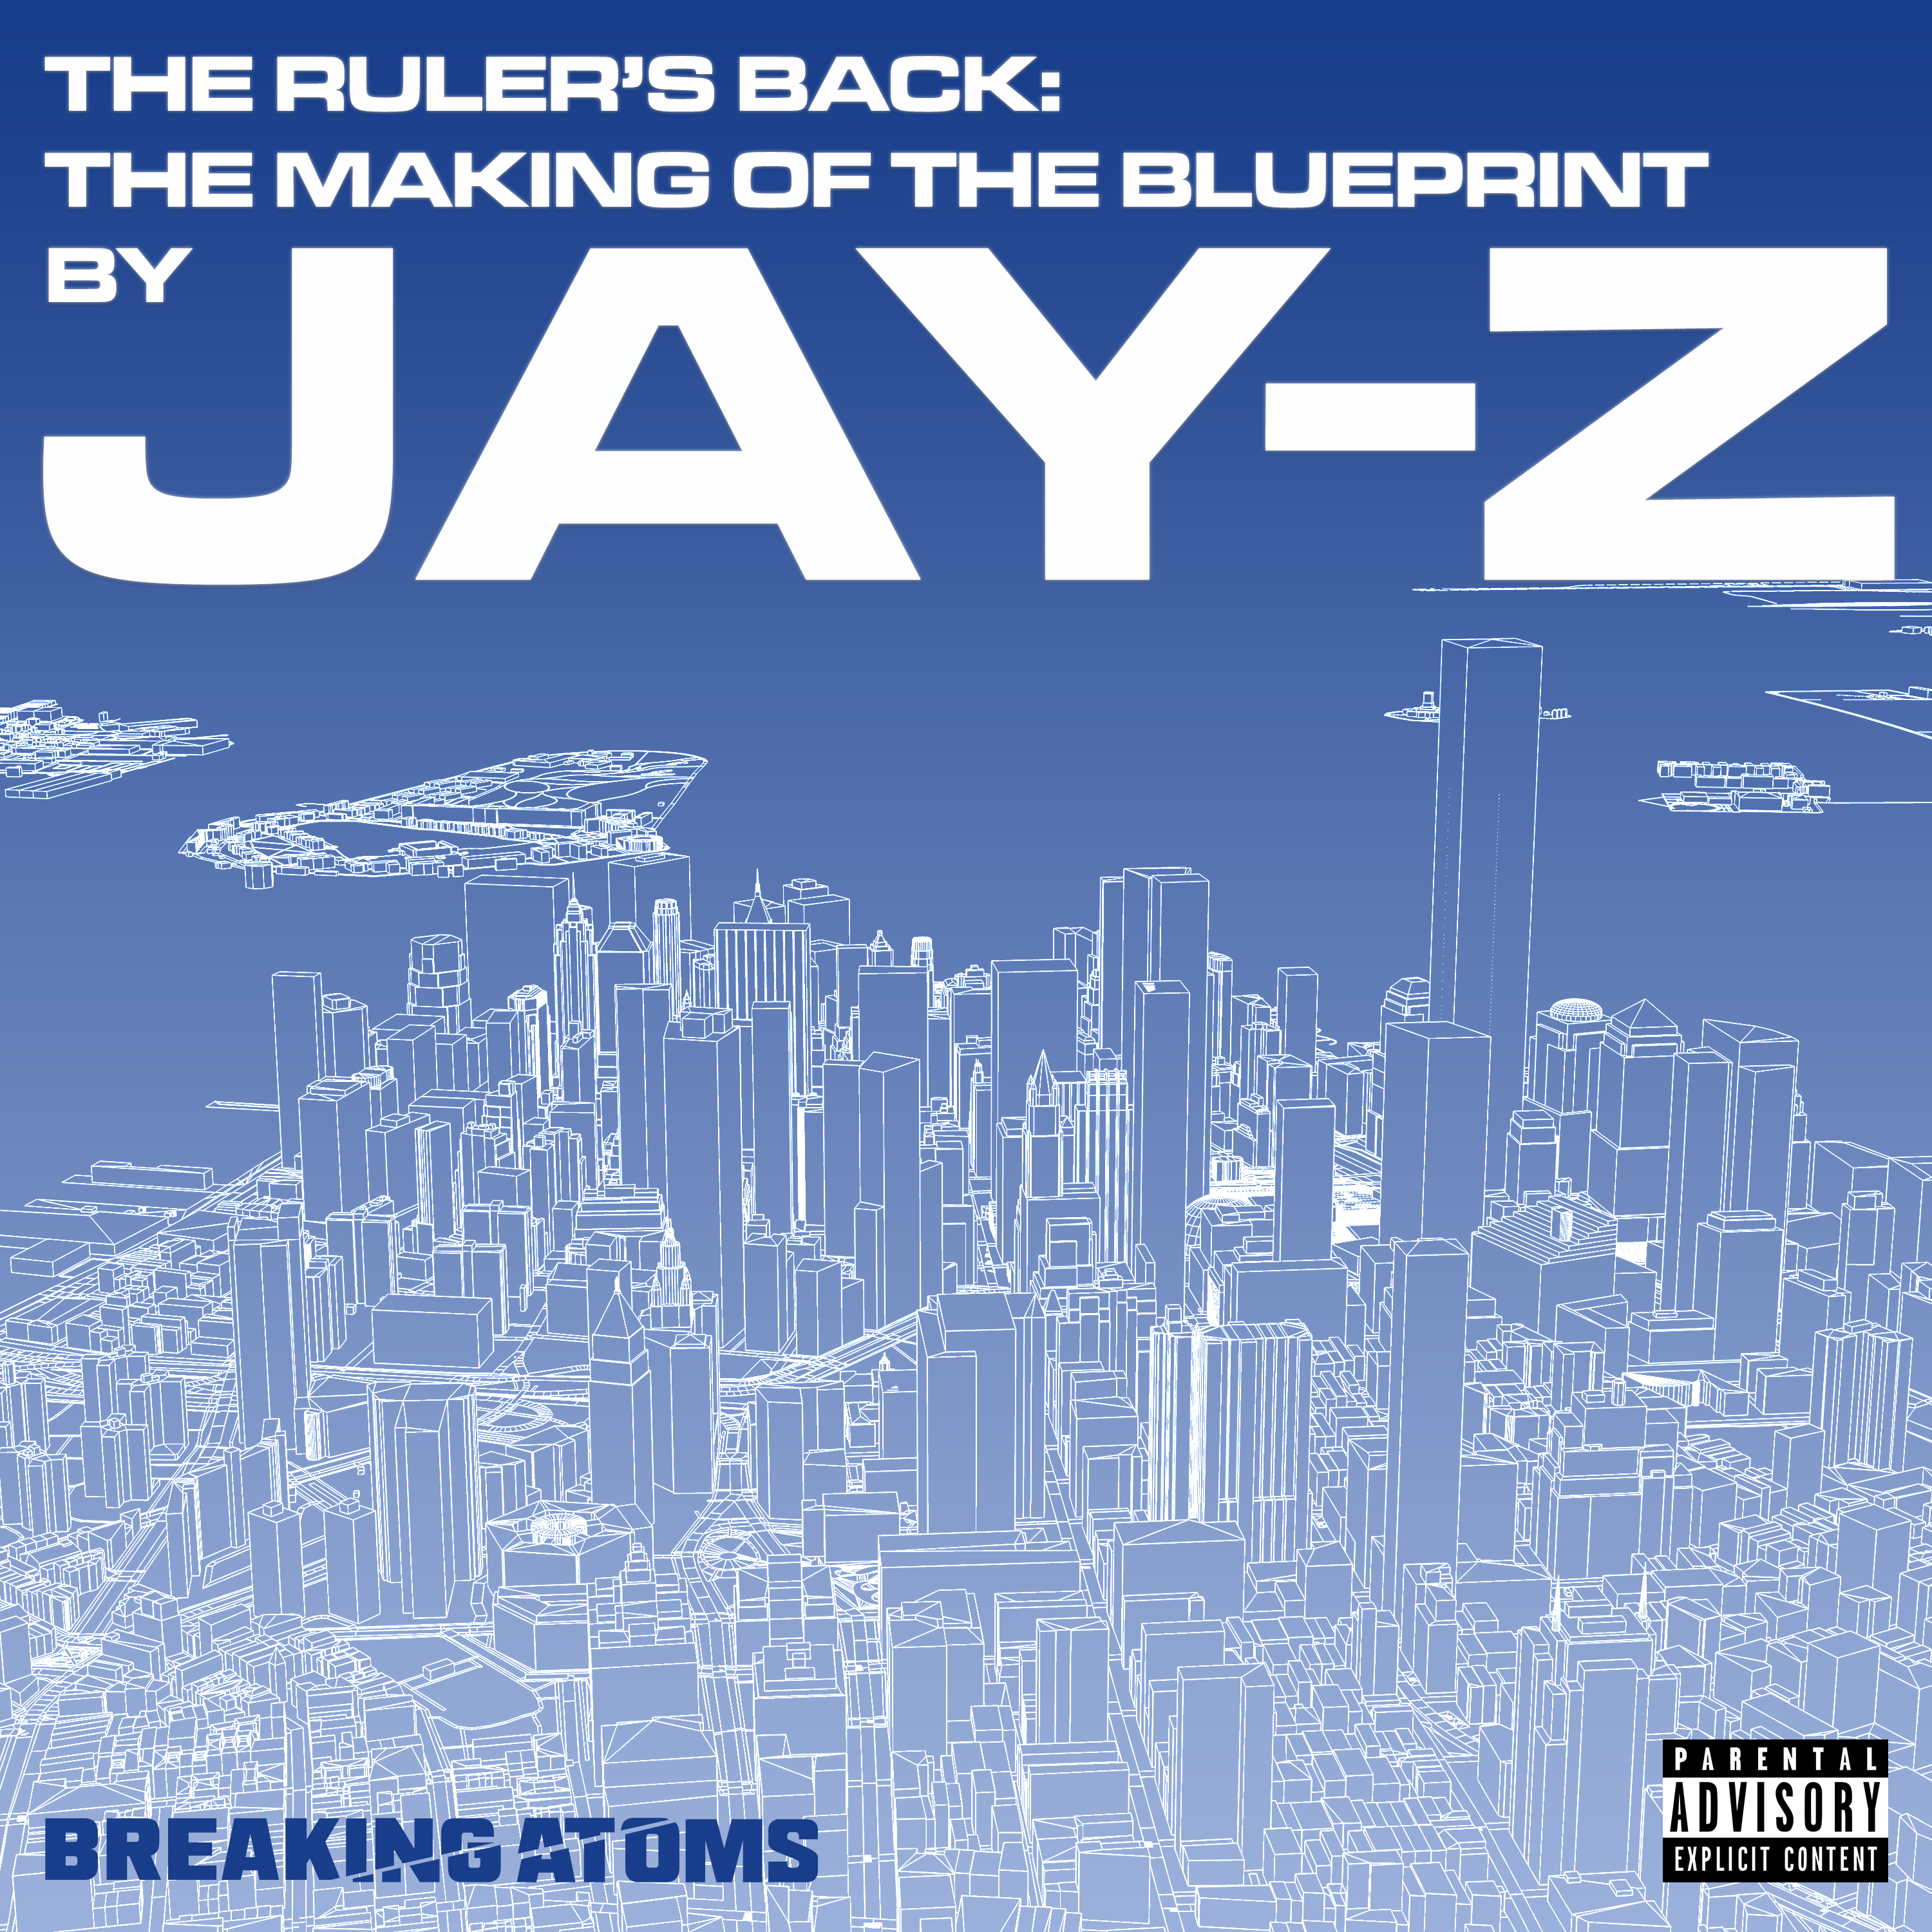 Ep. 4: The Ruler's Back | The Ruler's Back: The Making of The Blueprint by Jay-Z